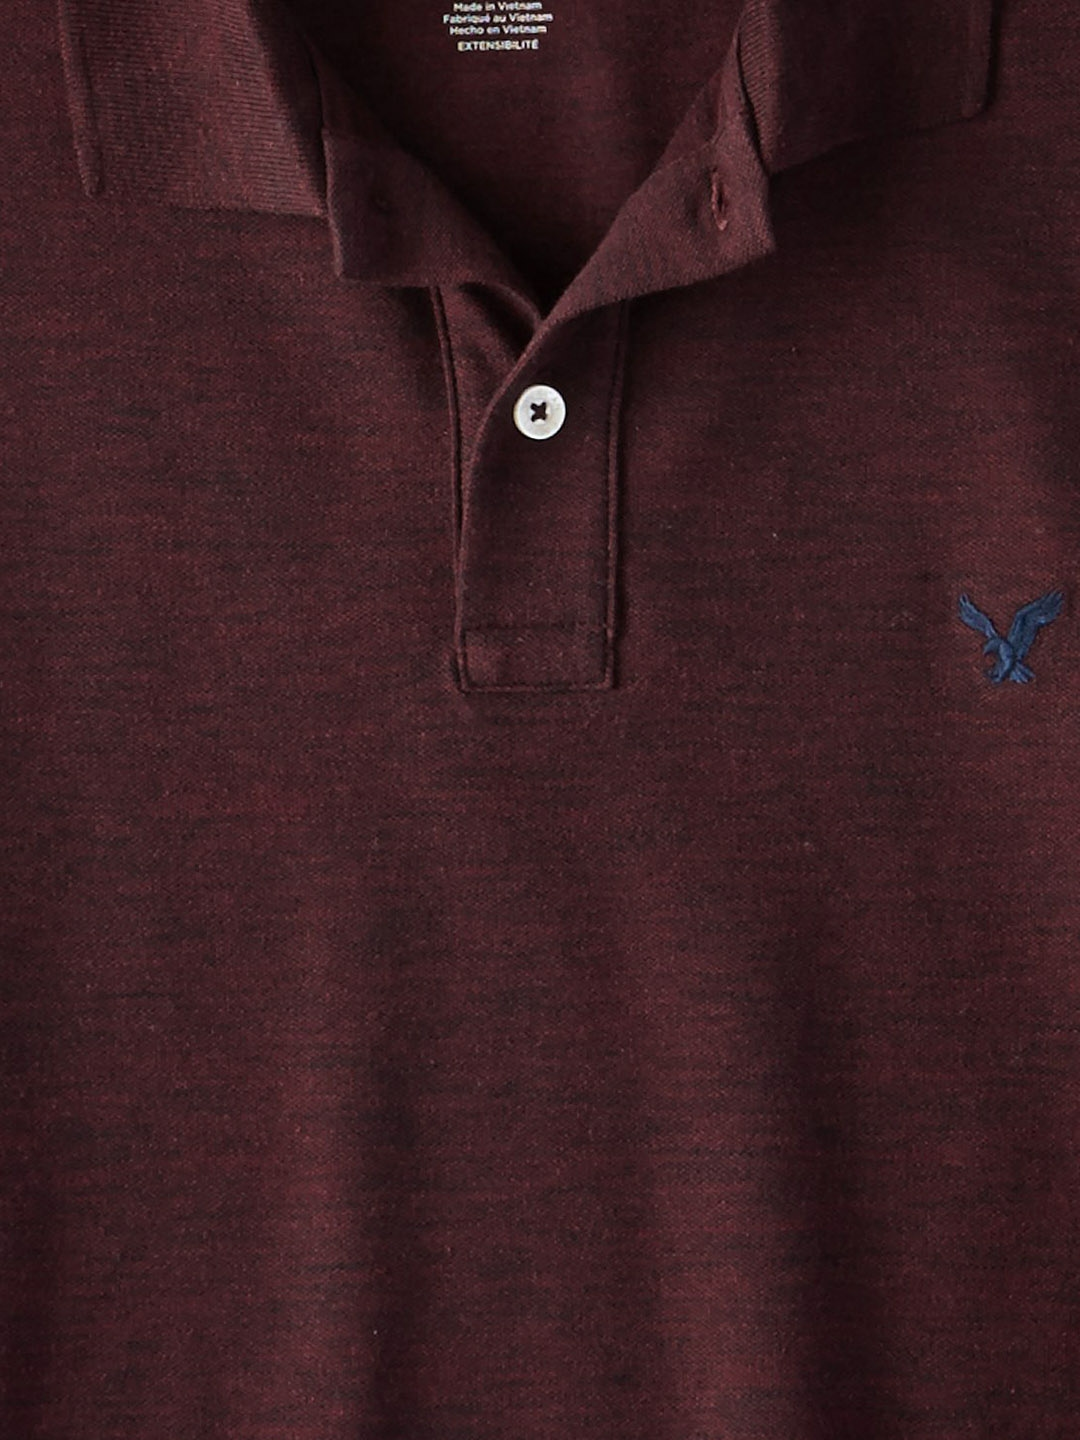 dc105c1f Buy AMERICAN EAGLE OUTFITTERS Men Burgundy Solid Polo Collar T Shirt ...